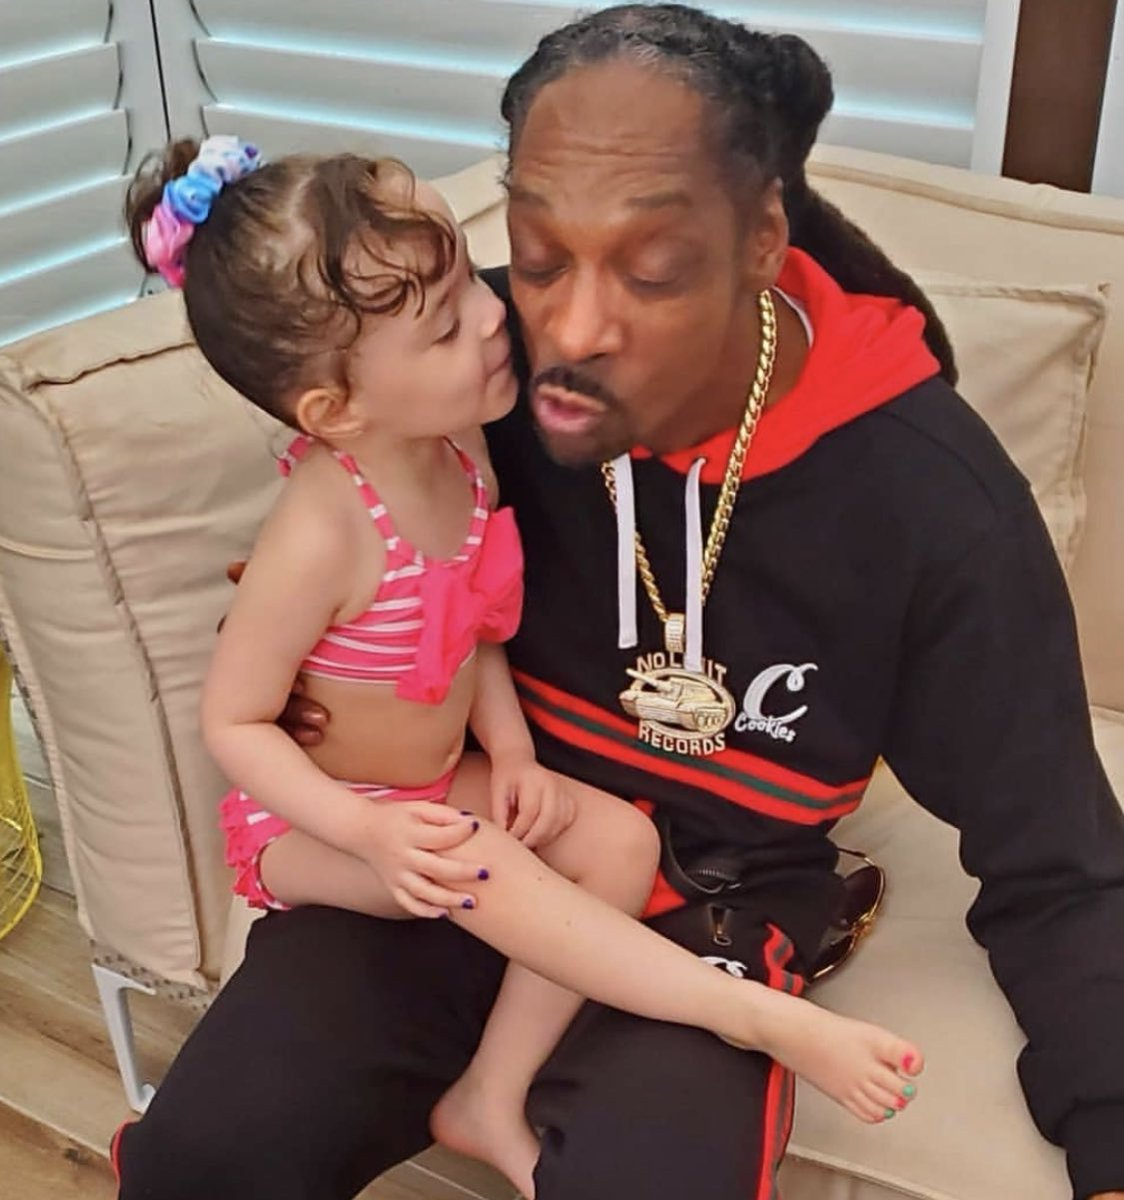 Replying to @FINALLEVEL: HappyBirthday to Chanel's Uncle @SnoopDogg  Love you Homie 👊🏽